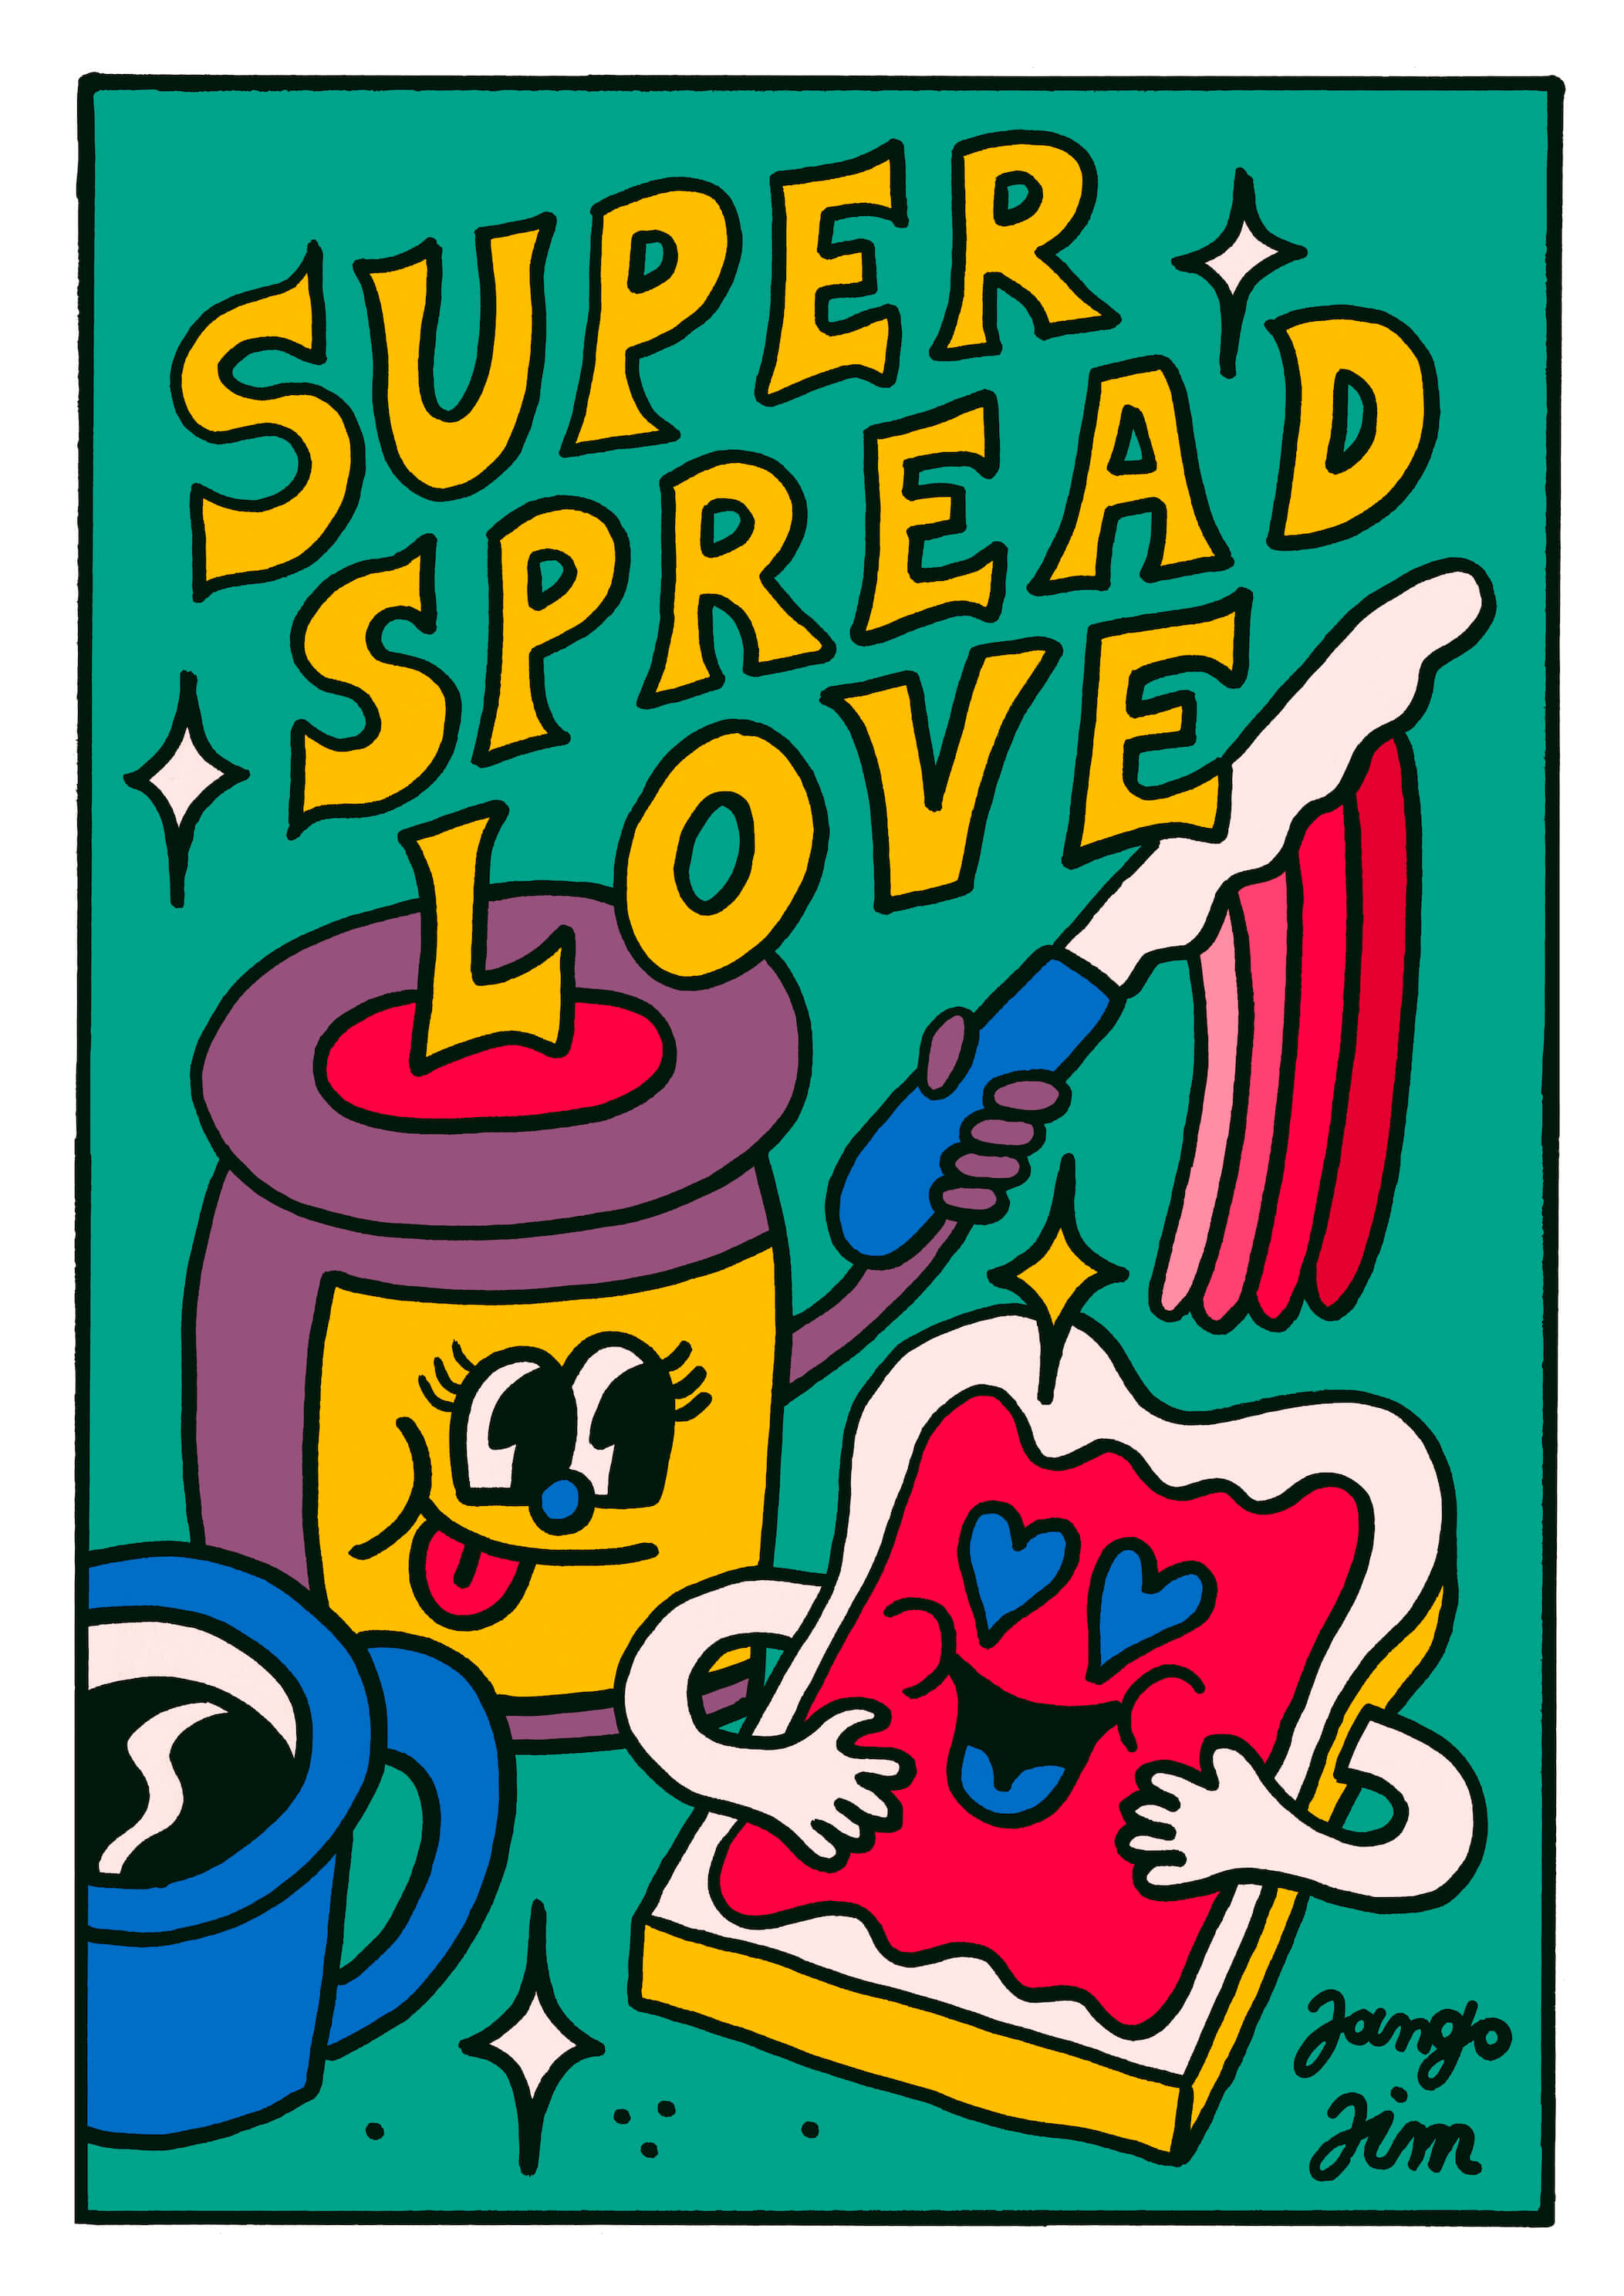 Super Spread Love main image